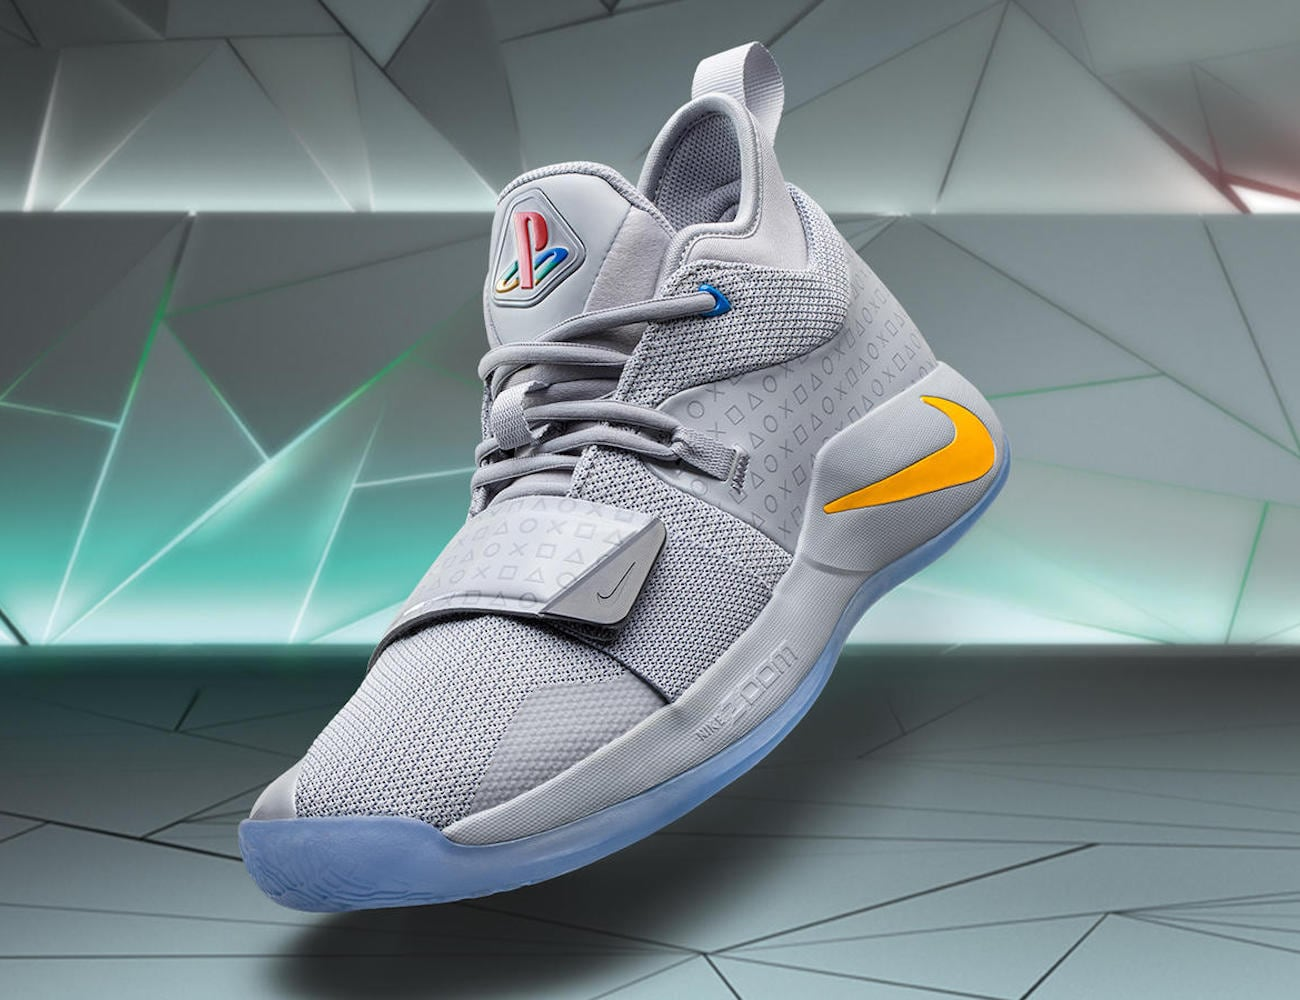 Nike PG 2.5 x PlayStation Colorway Footwear